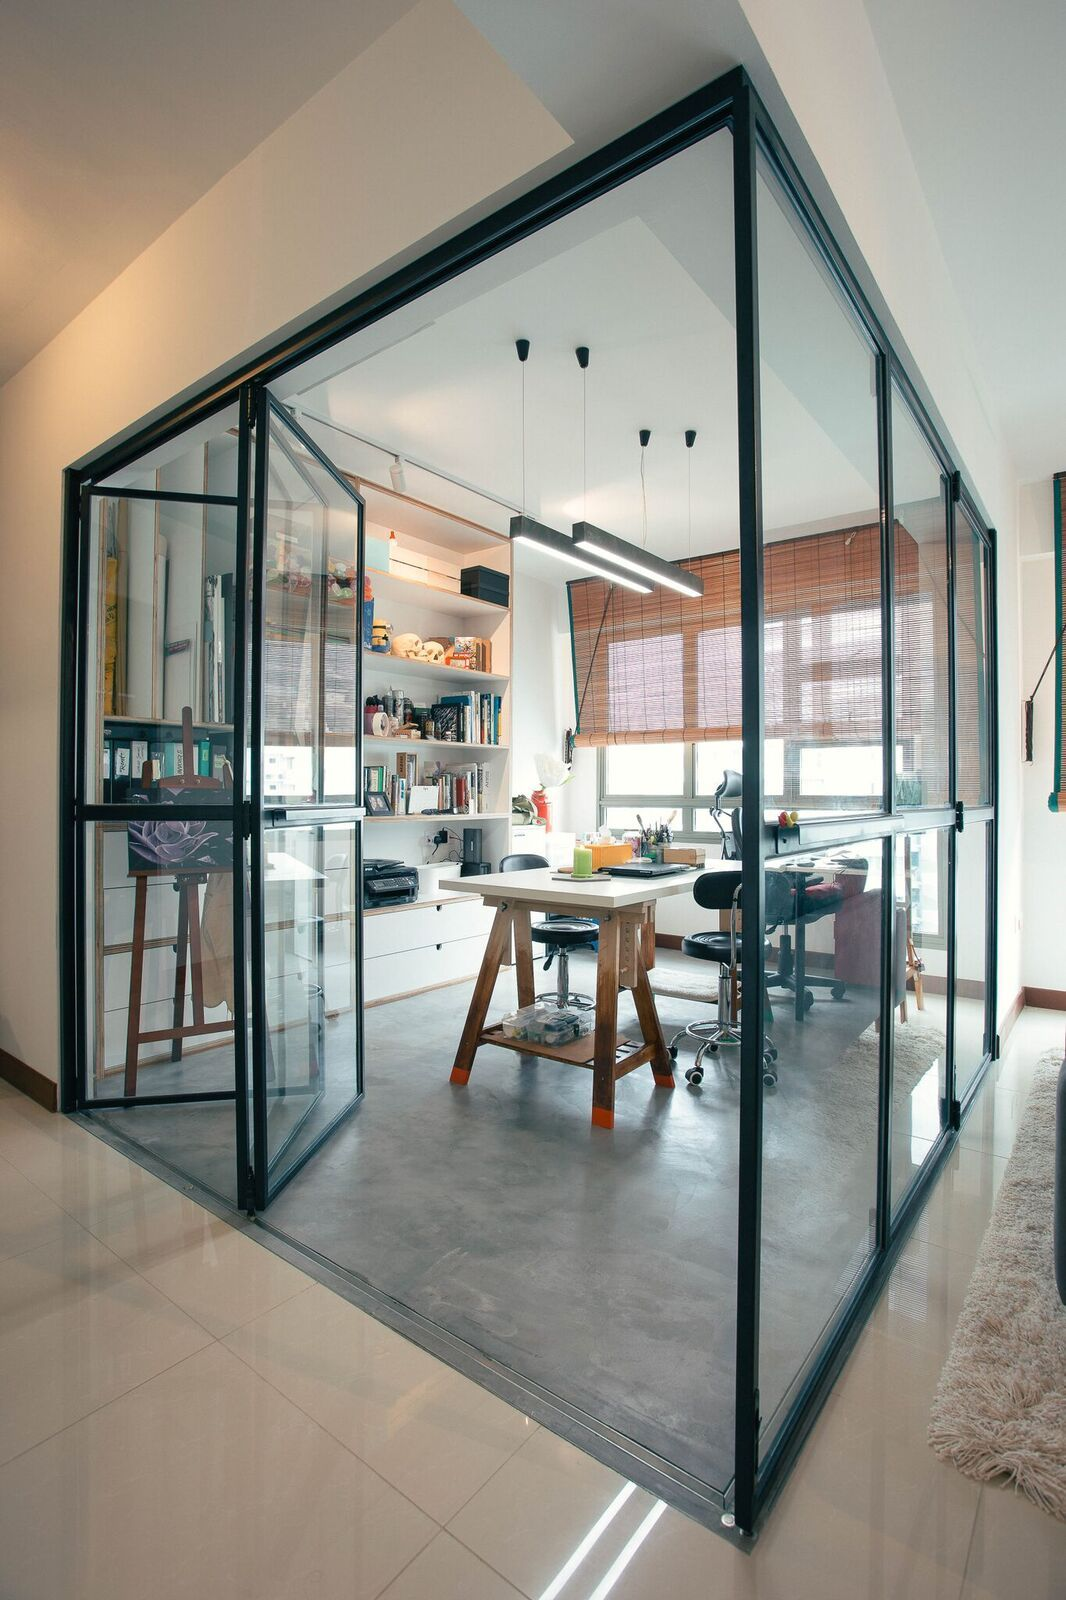 Hdb Study Room Design Ideas: Glass Foldable Door For Study Room